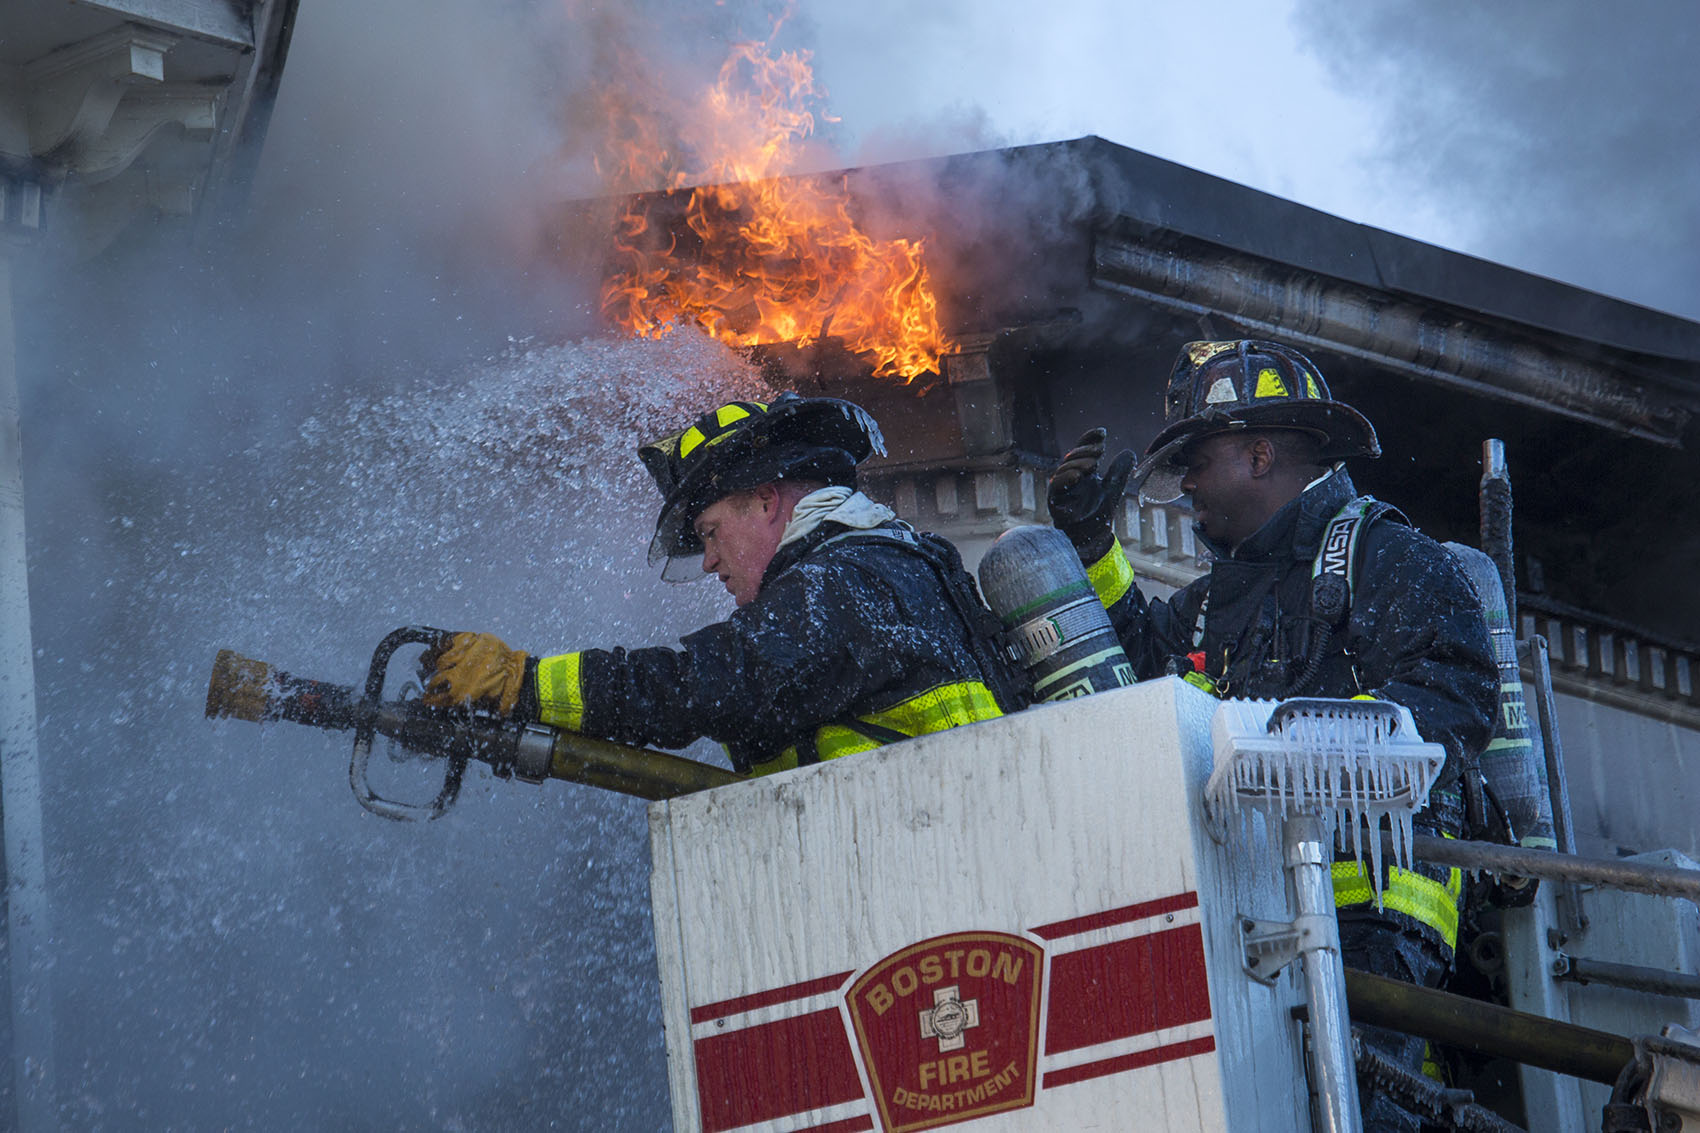 Boston Firefighters Douse 6Alarm Fire In Charlestown